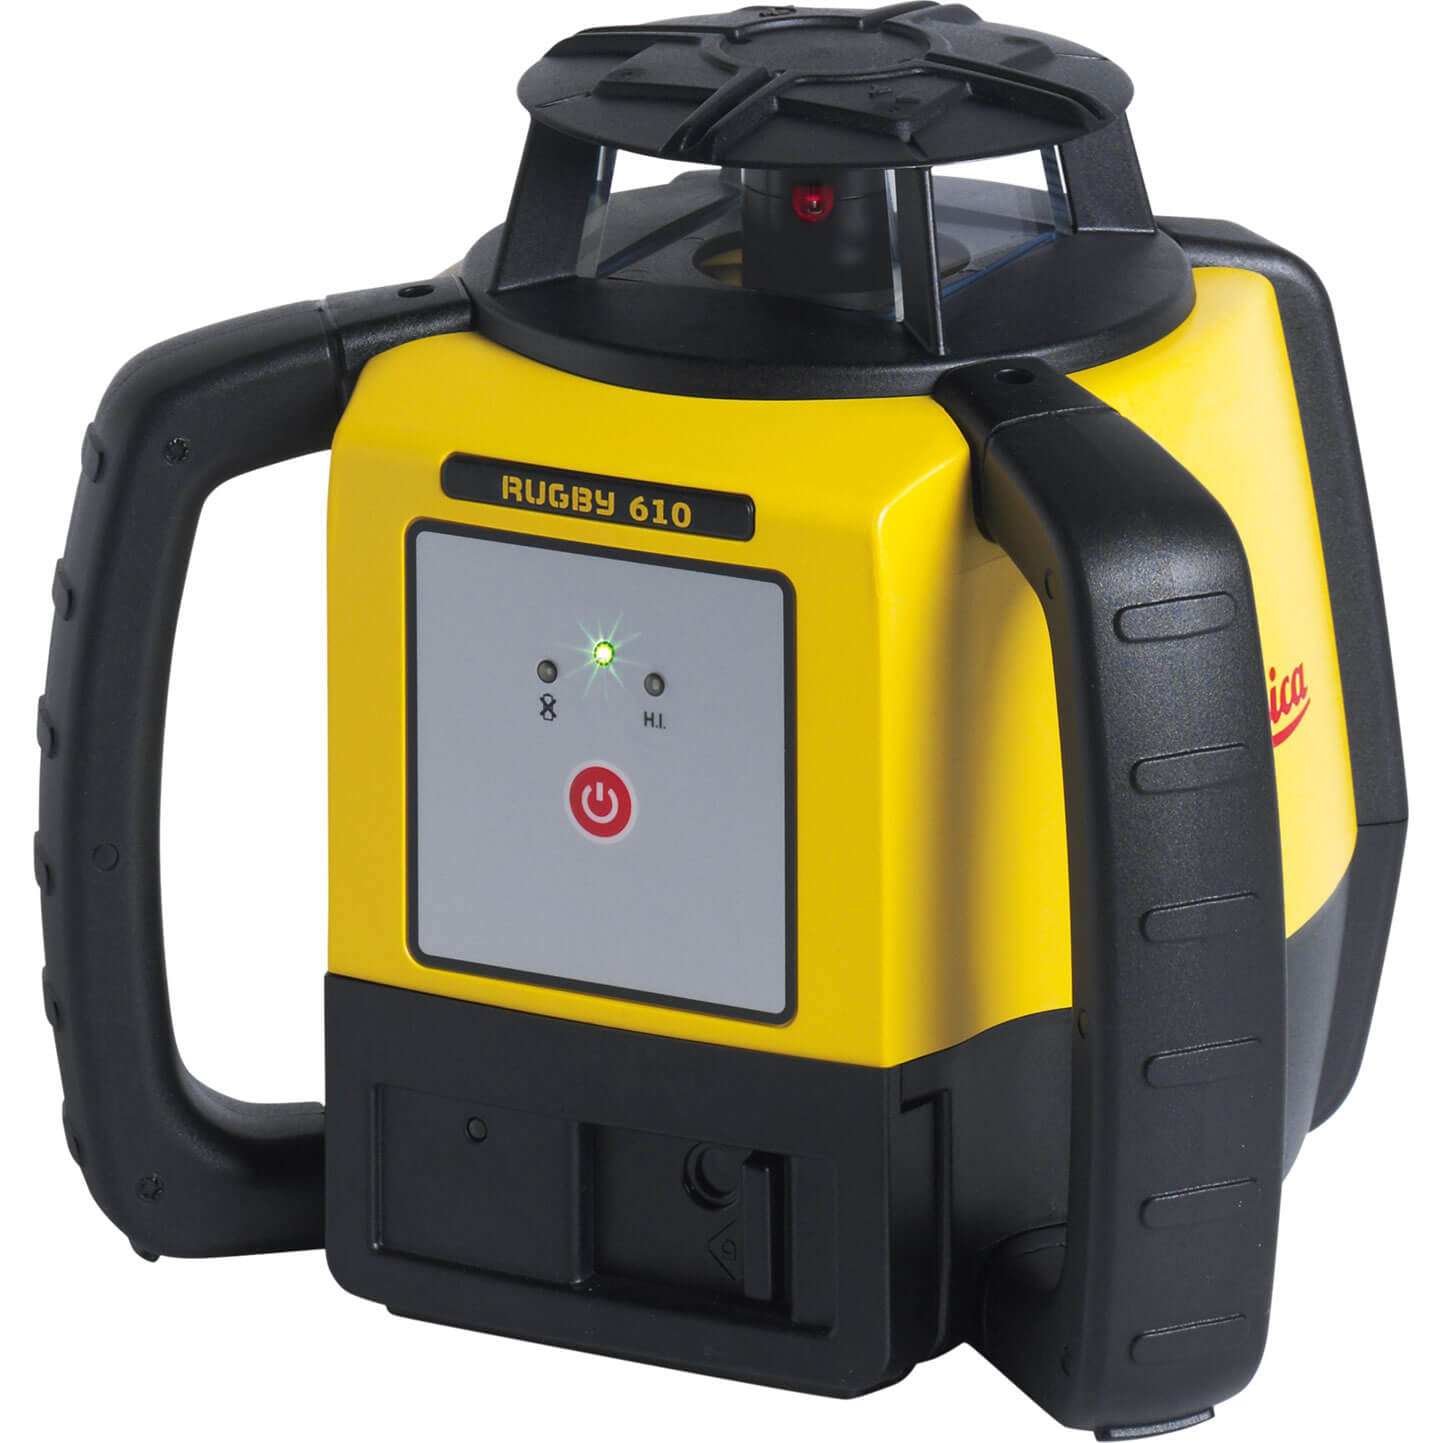 Image of Leica Geosystems Rugby 610BA Rotating Self Levelling Laser Level